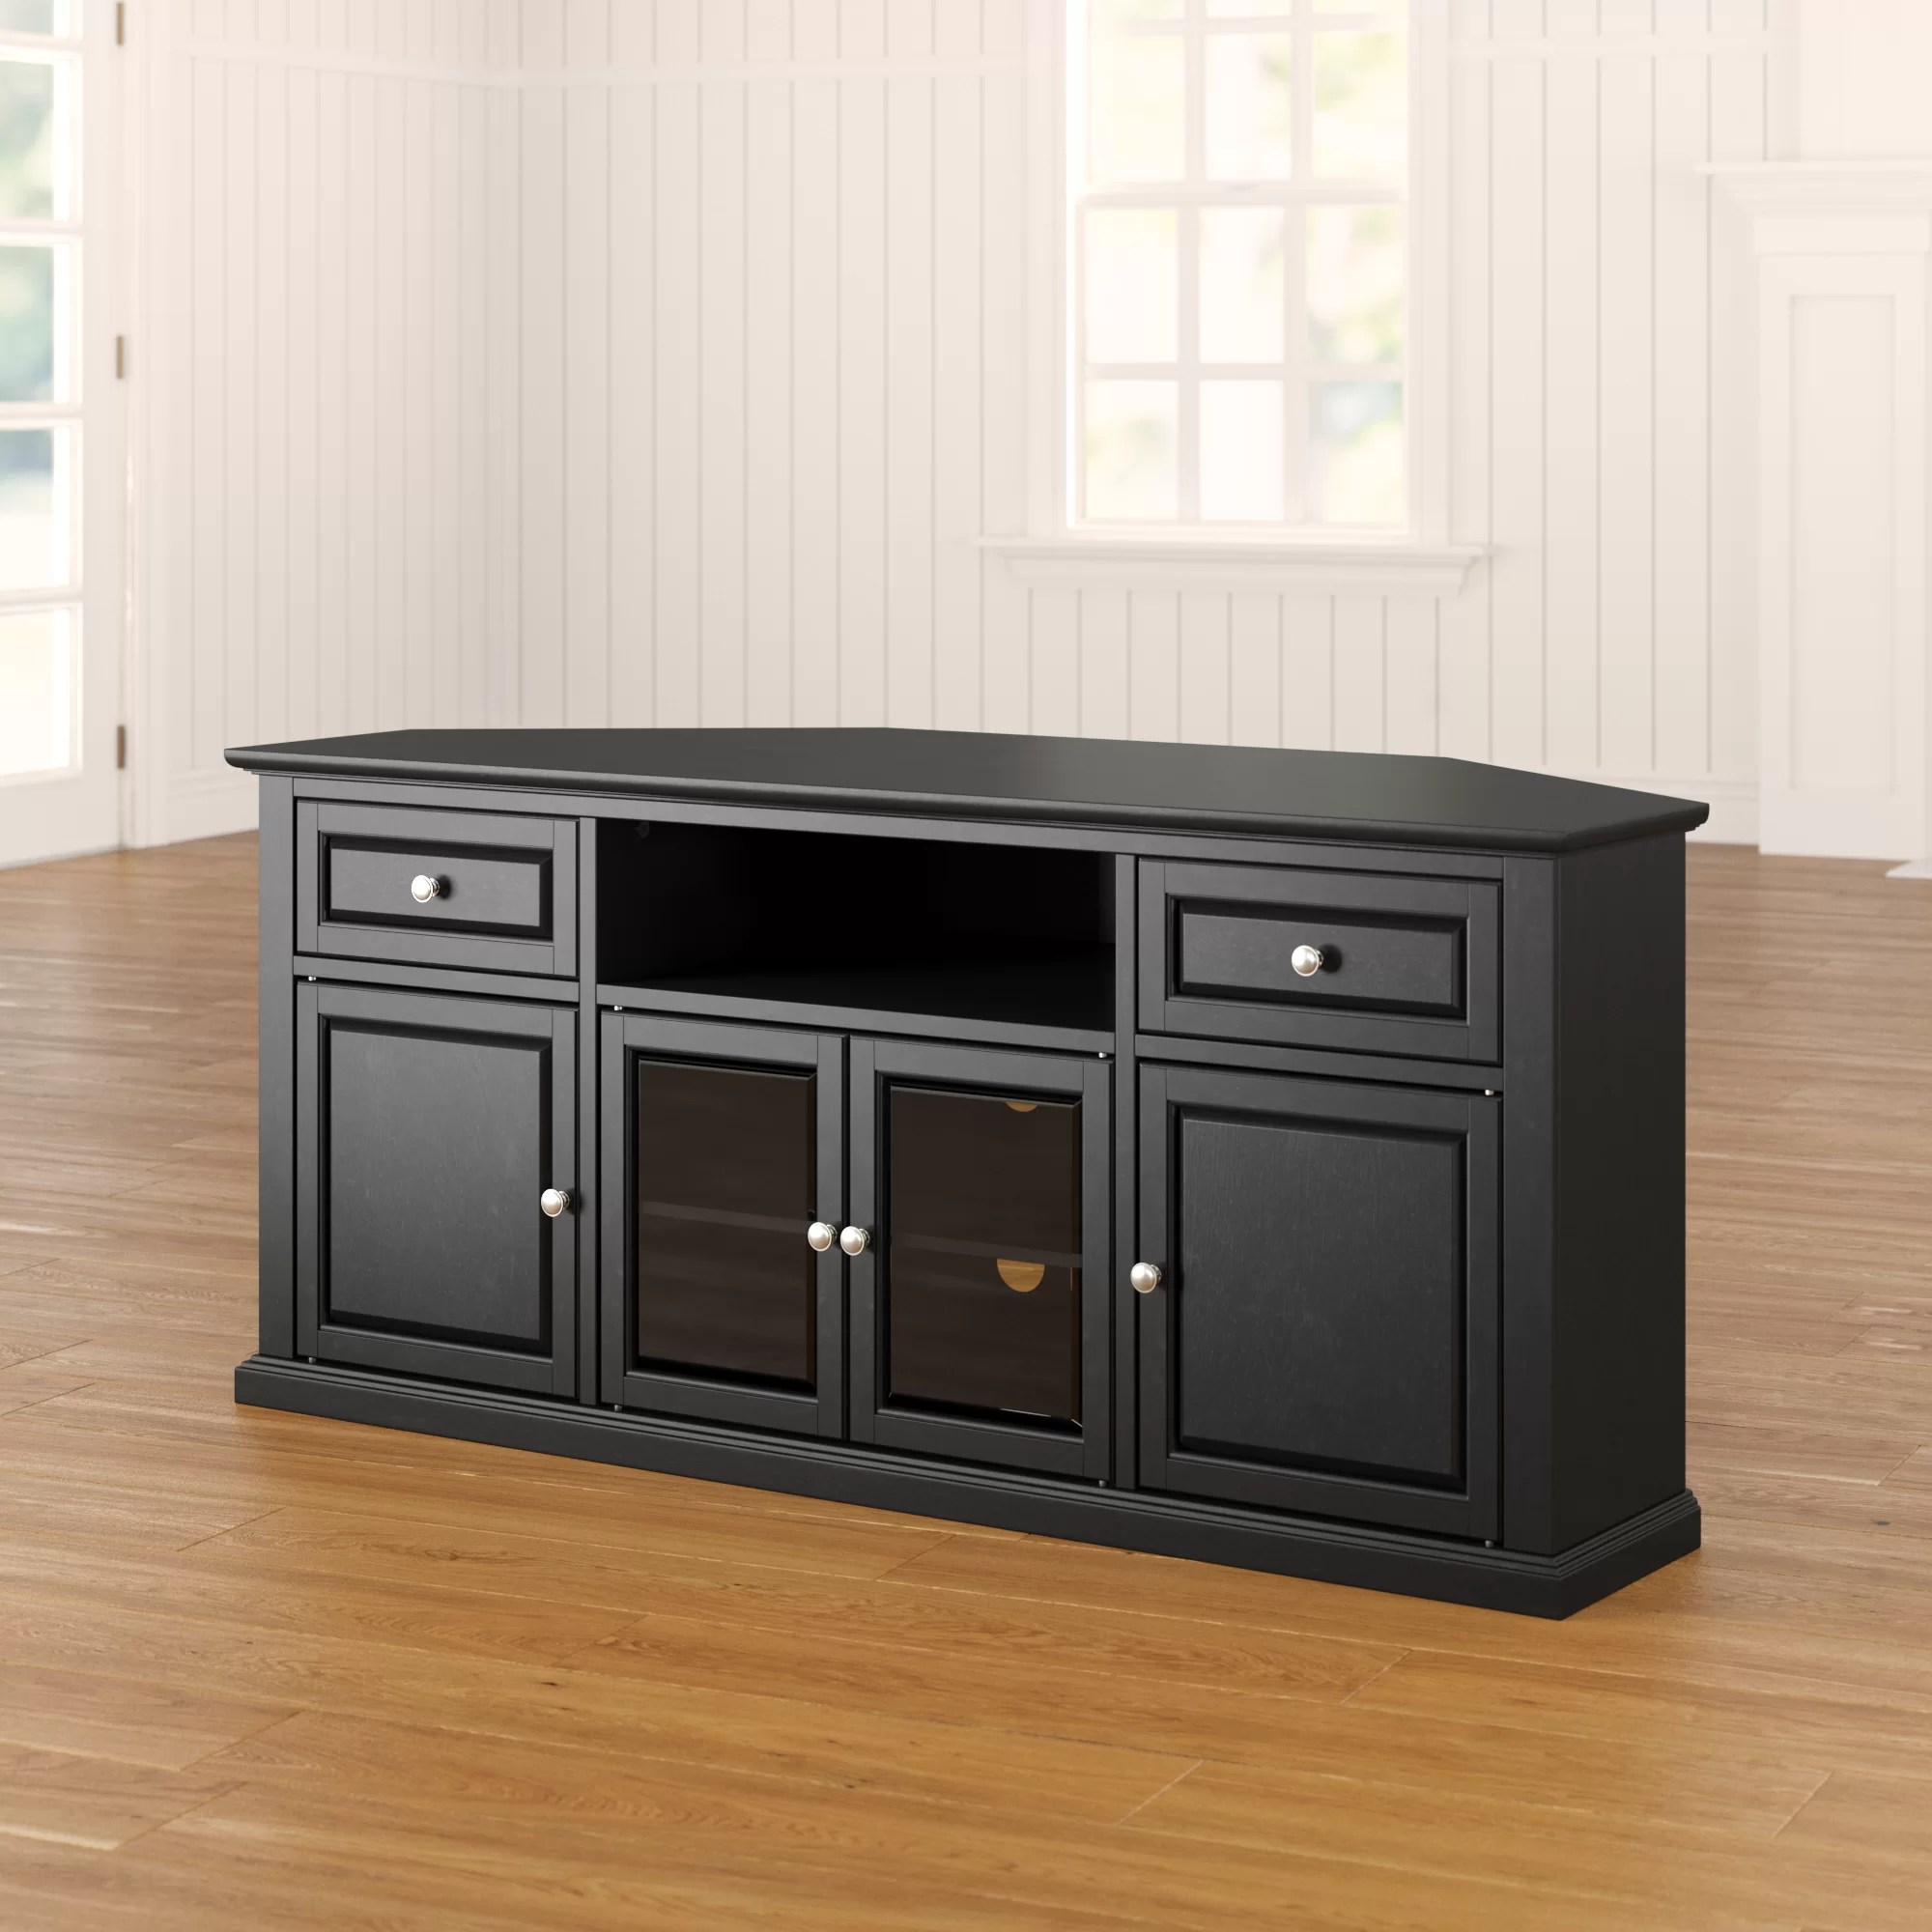 Charlton Home Whittiker Corner Tv Stand For Tvs Up To 65 Reviews